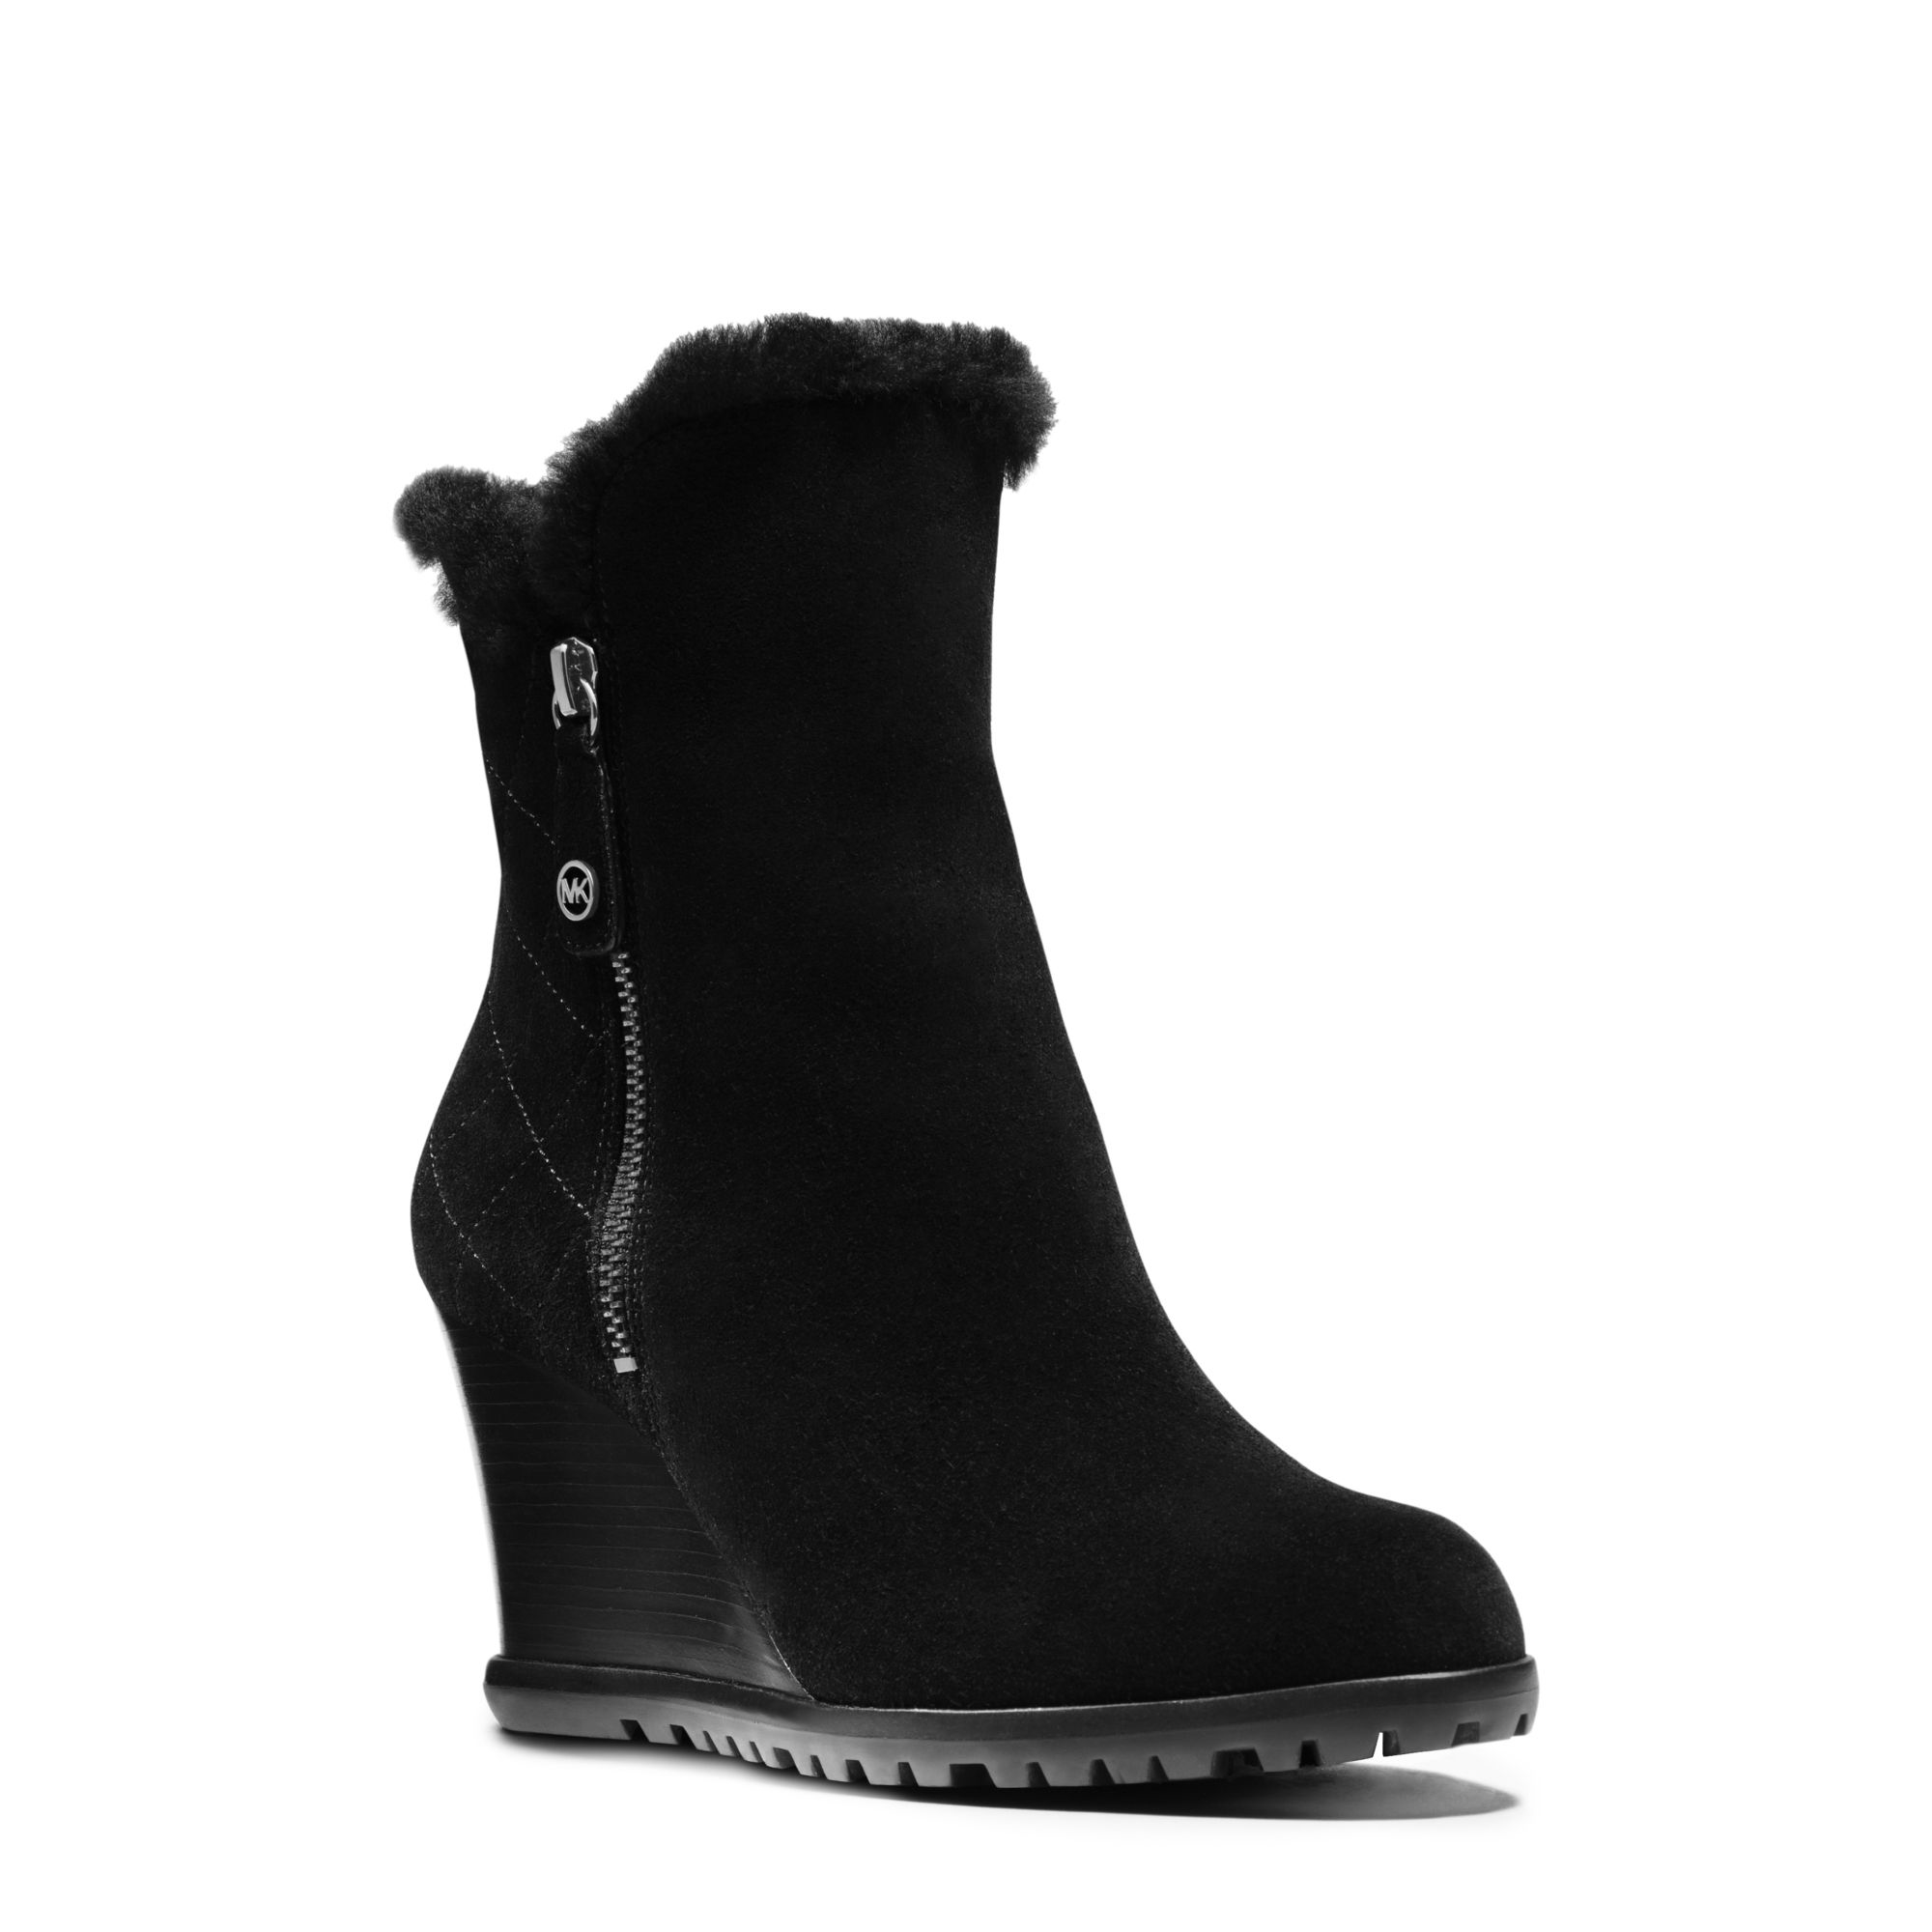 Michael Kors Whitaker Suede Wedge Boot